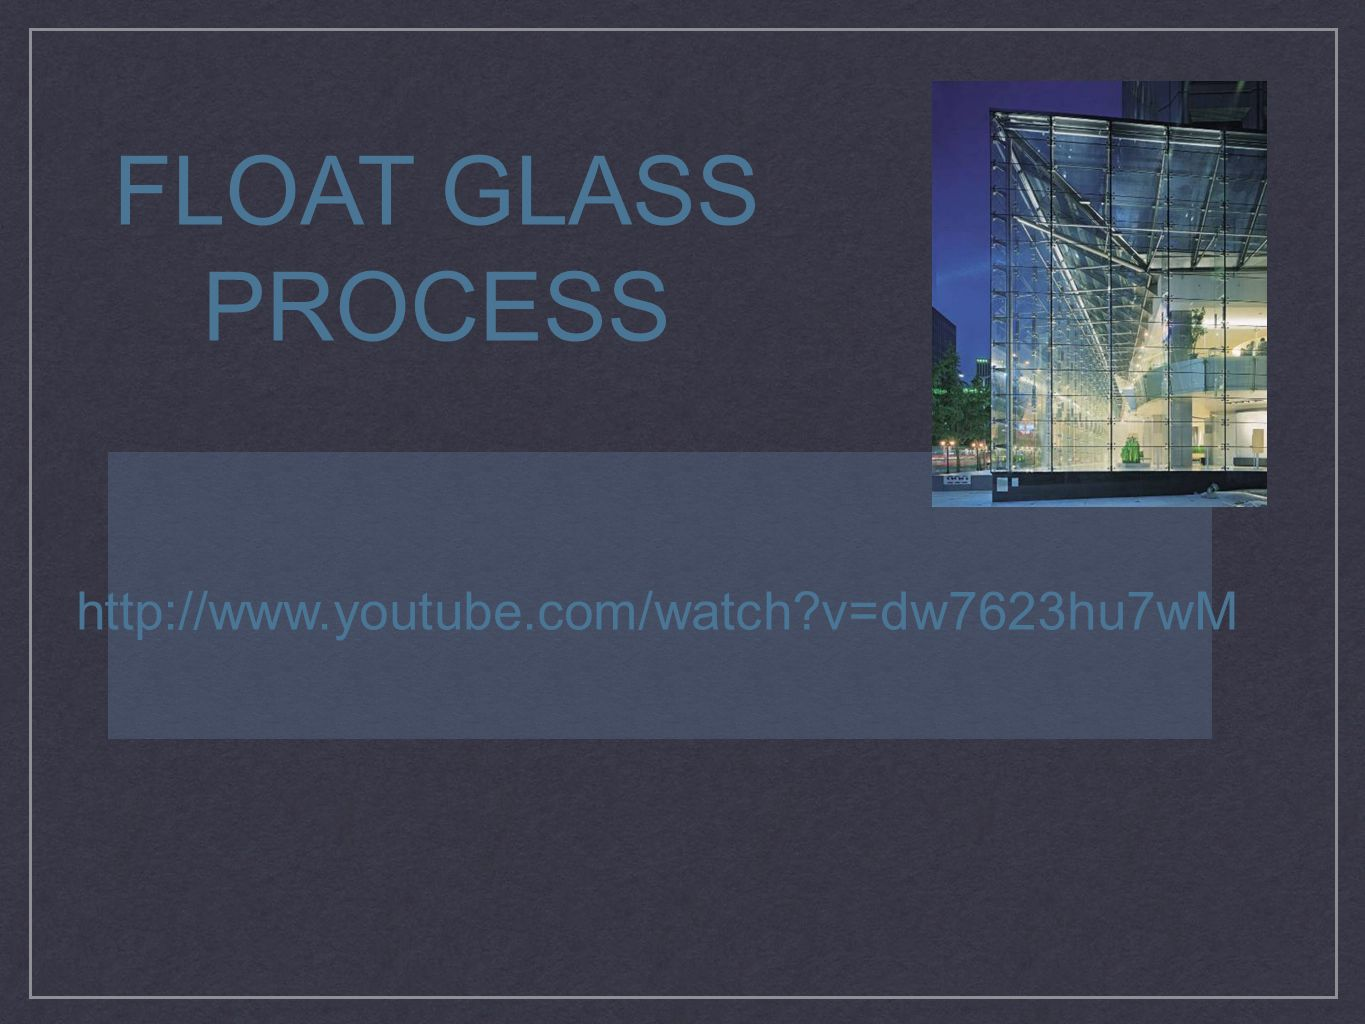 FLOAT GLASS PROCESS http://www.youtube.com/watch v=dw7623hu7wM